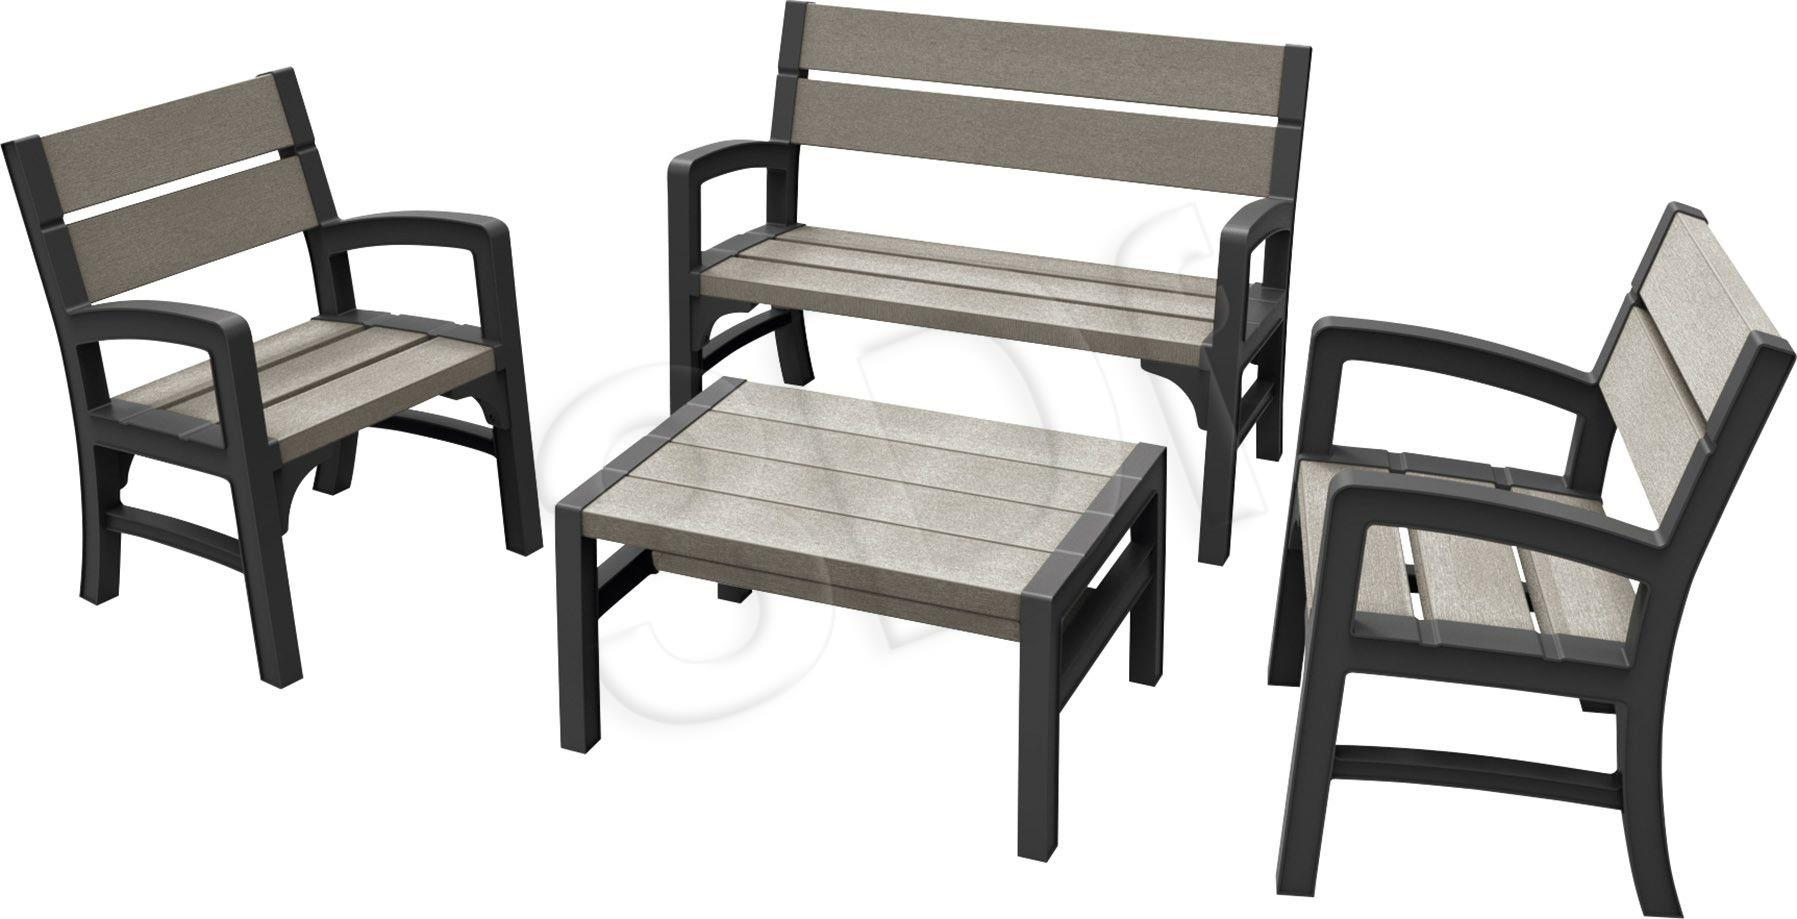 Furniture set KETER  233152 (graphite color) 233152 Dārza mēbeles